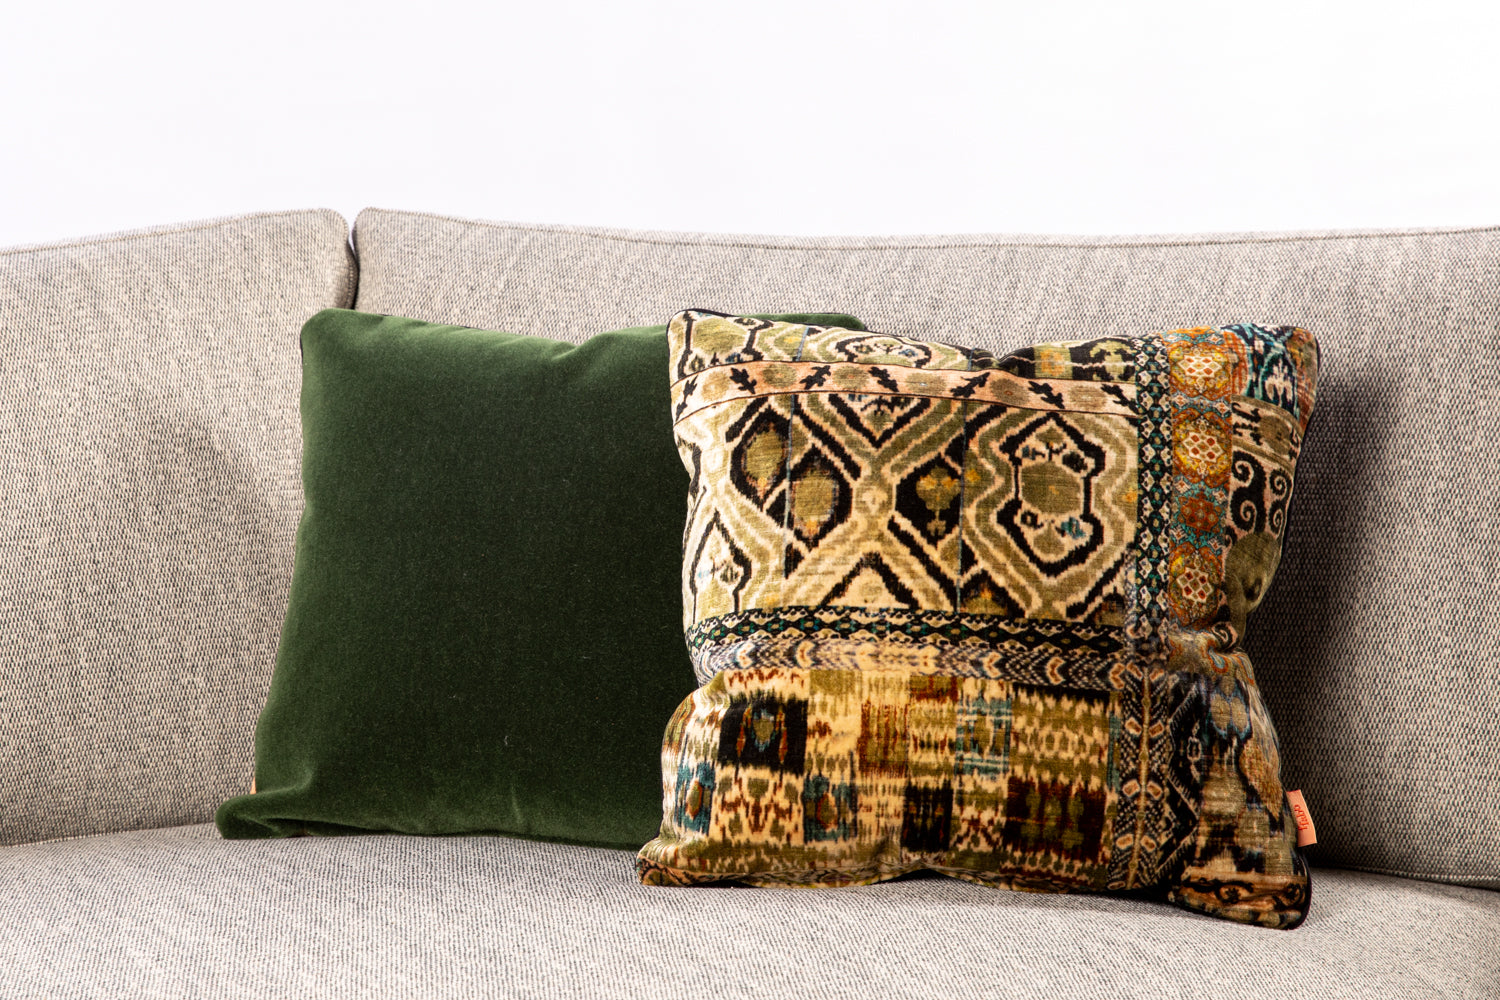 ffabb toss pillows, velvet, mohair Kravet & RADG fabric